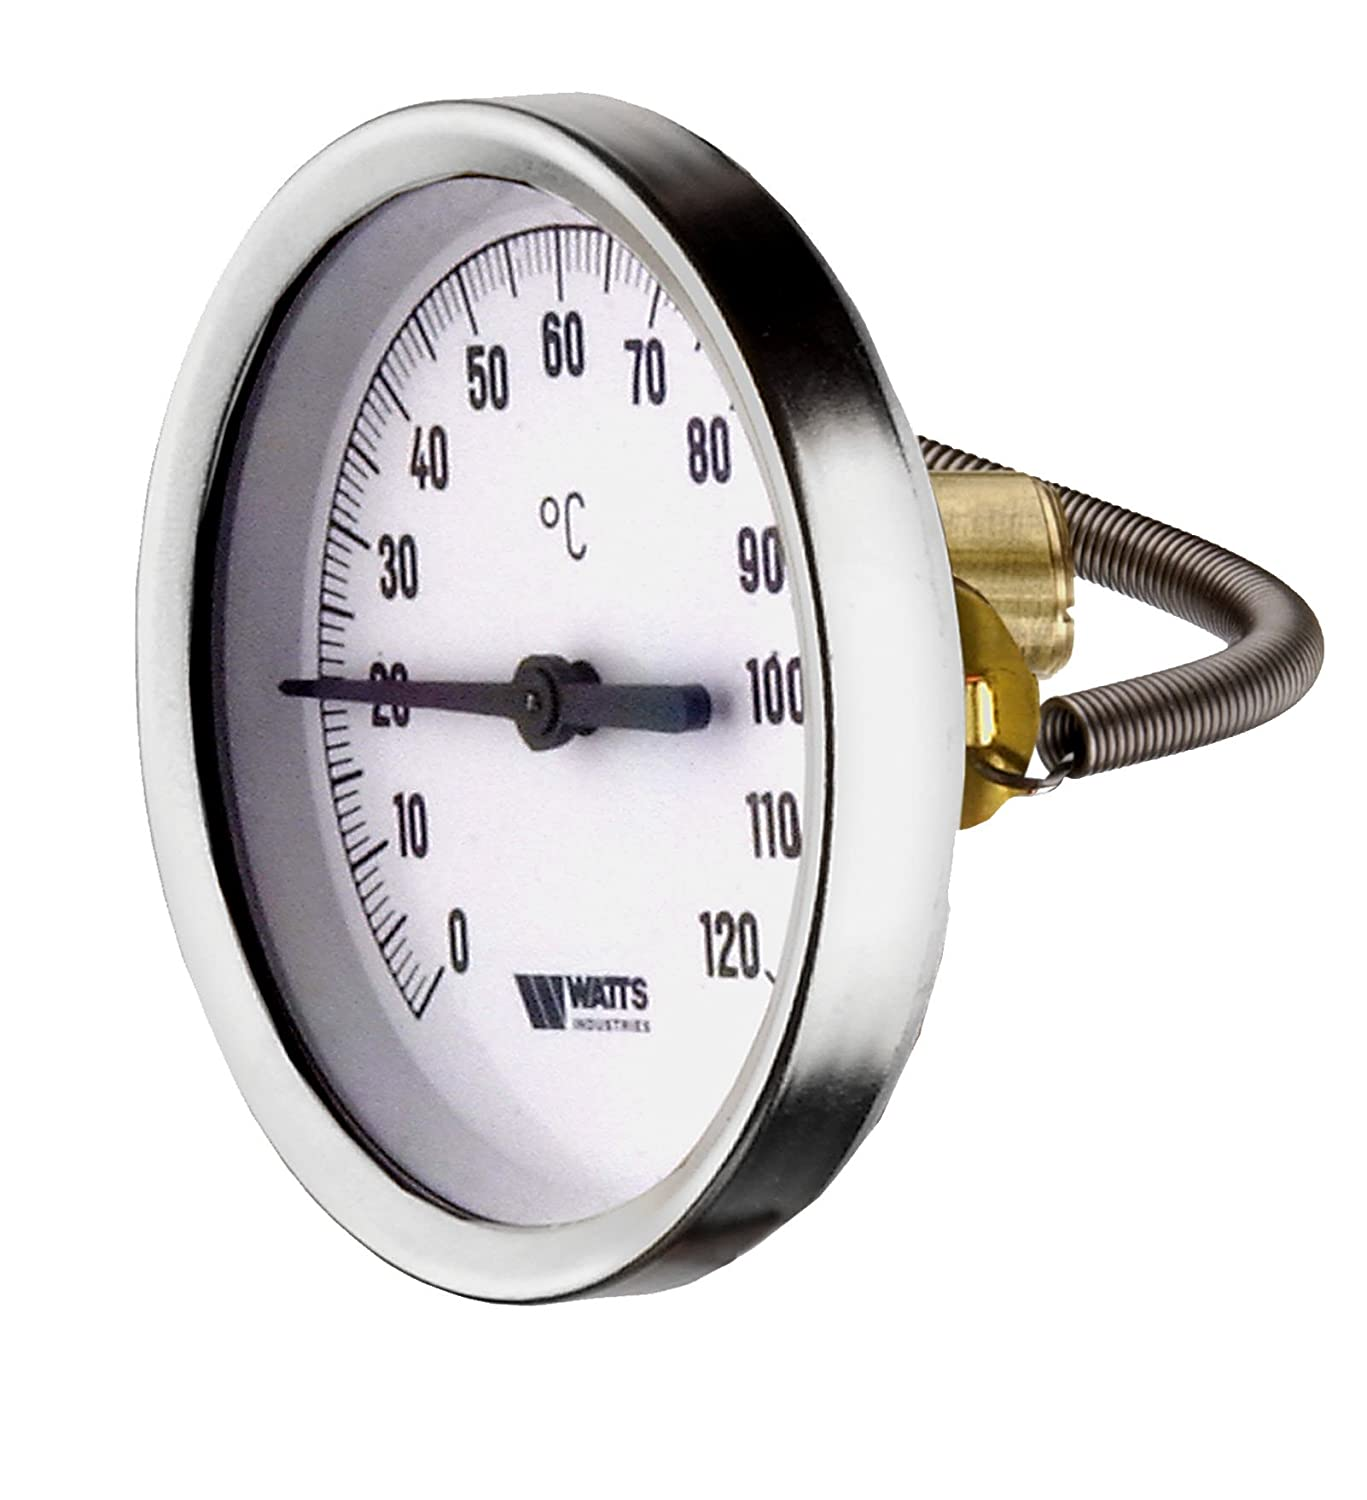 Anlege Thermometer Zeigerthermometer 0-120°C 63 mm Anlegethermometer Bimetall